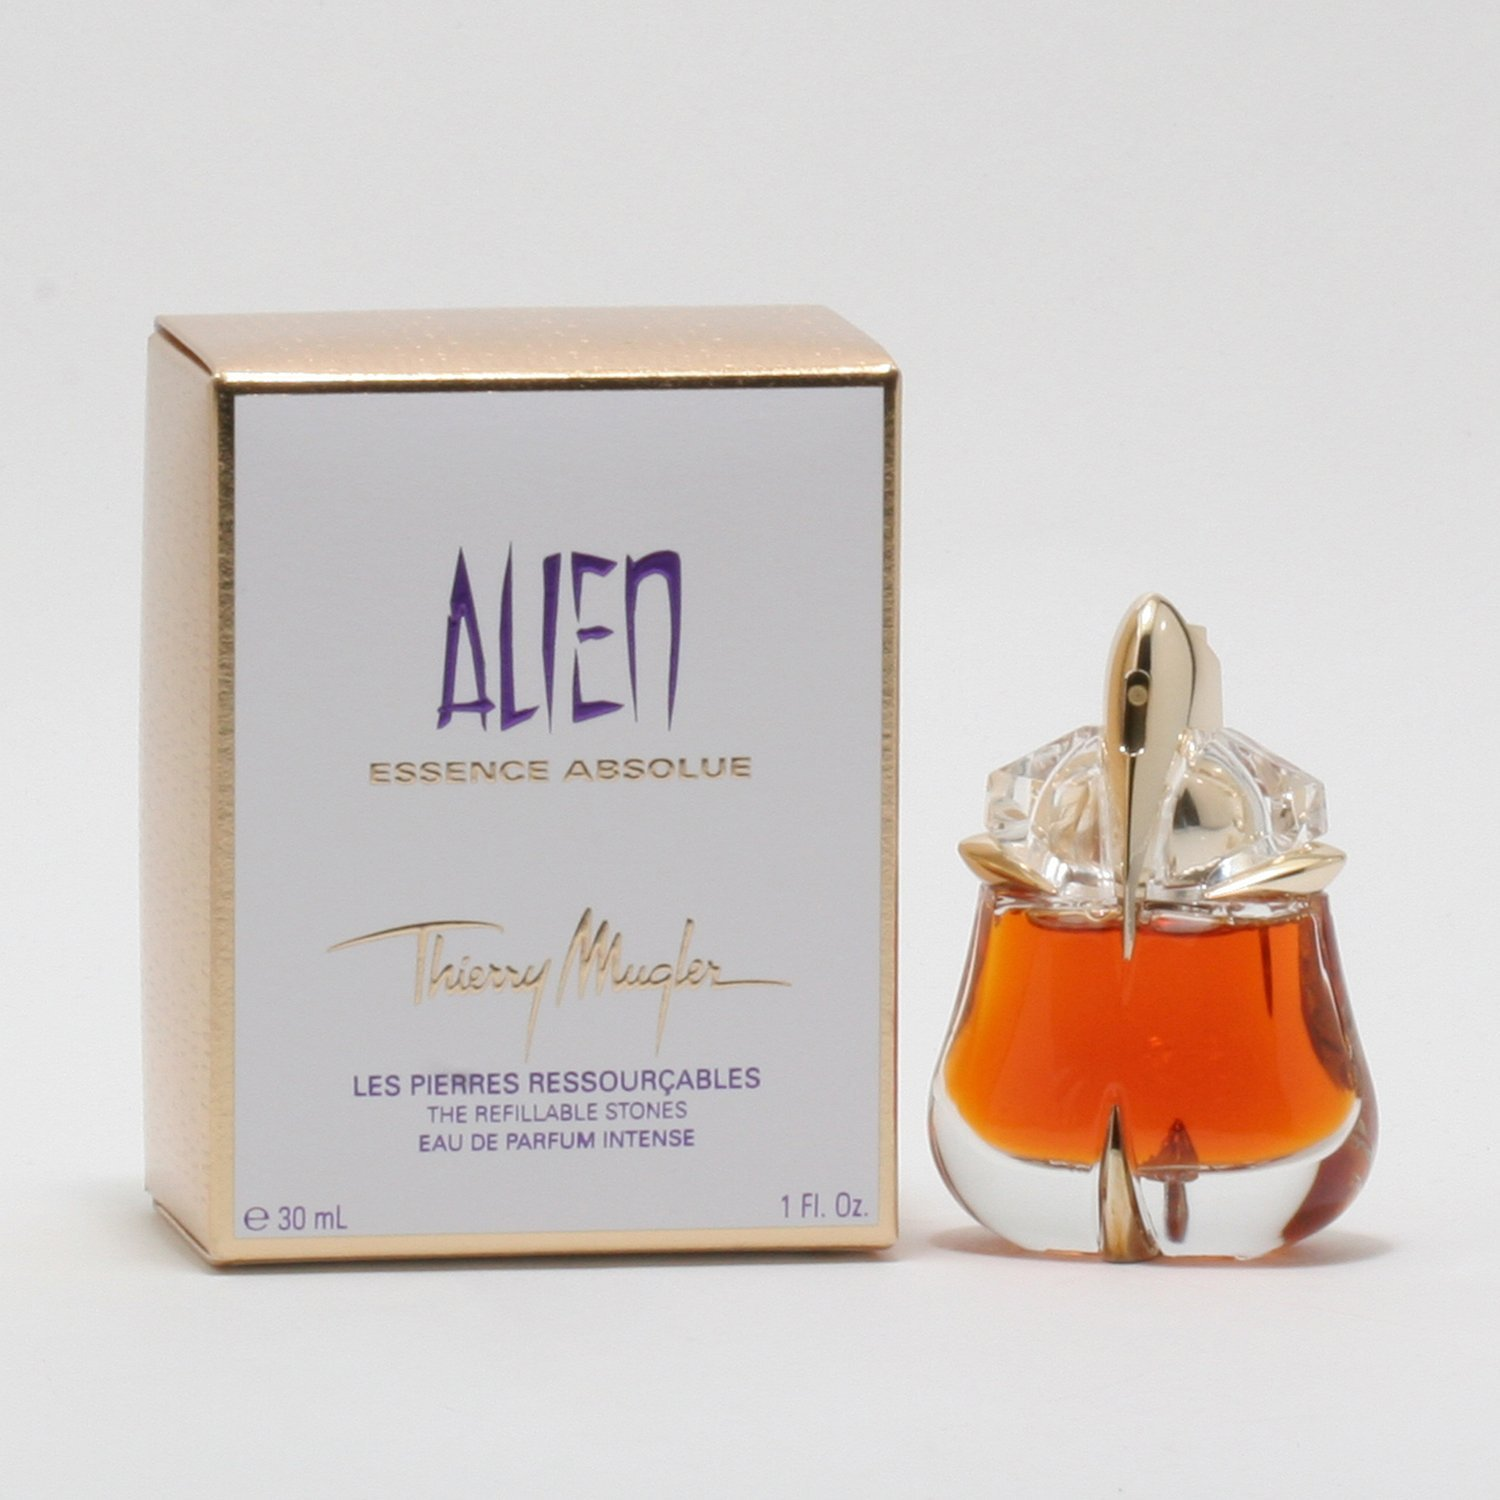 Buy Thierry Mugler Alien Essence Absolue Eau De Parfum Intense